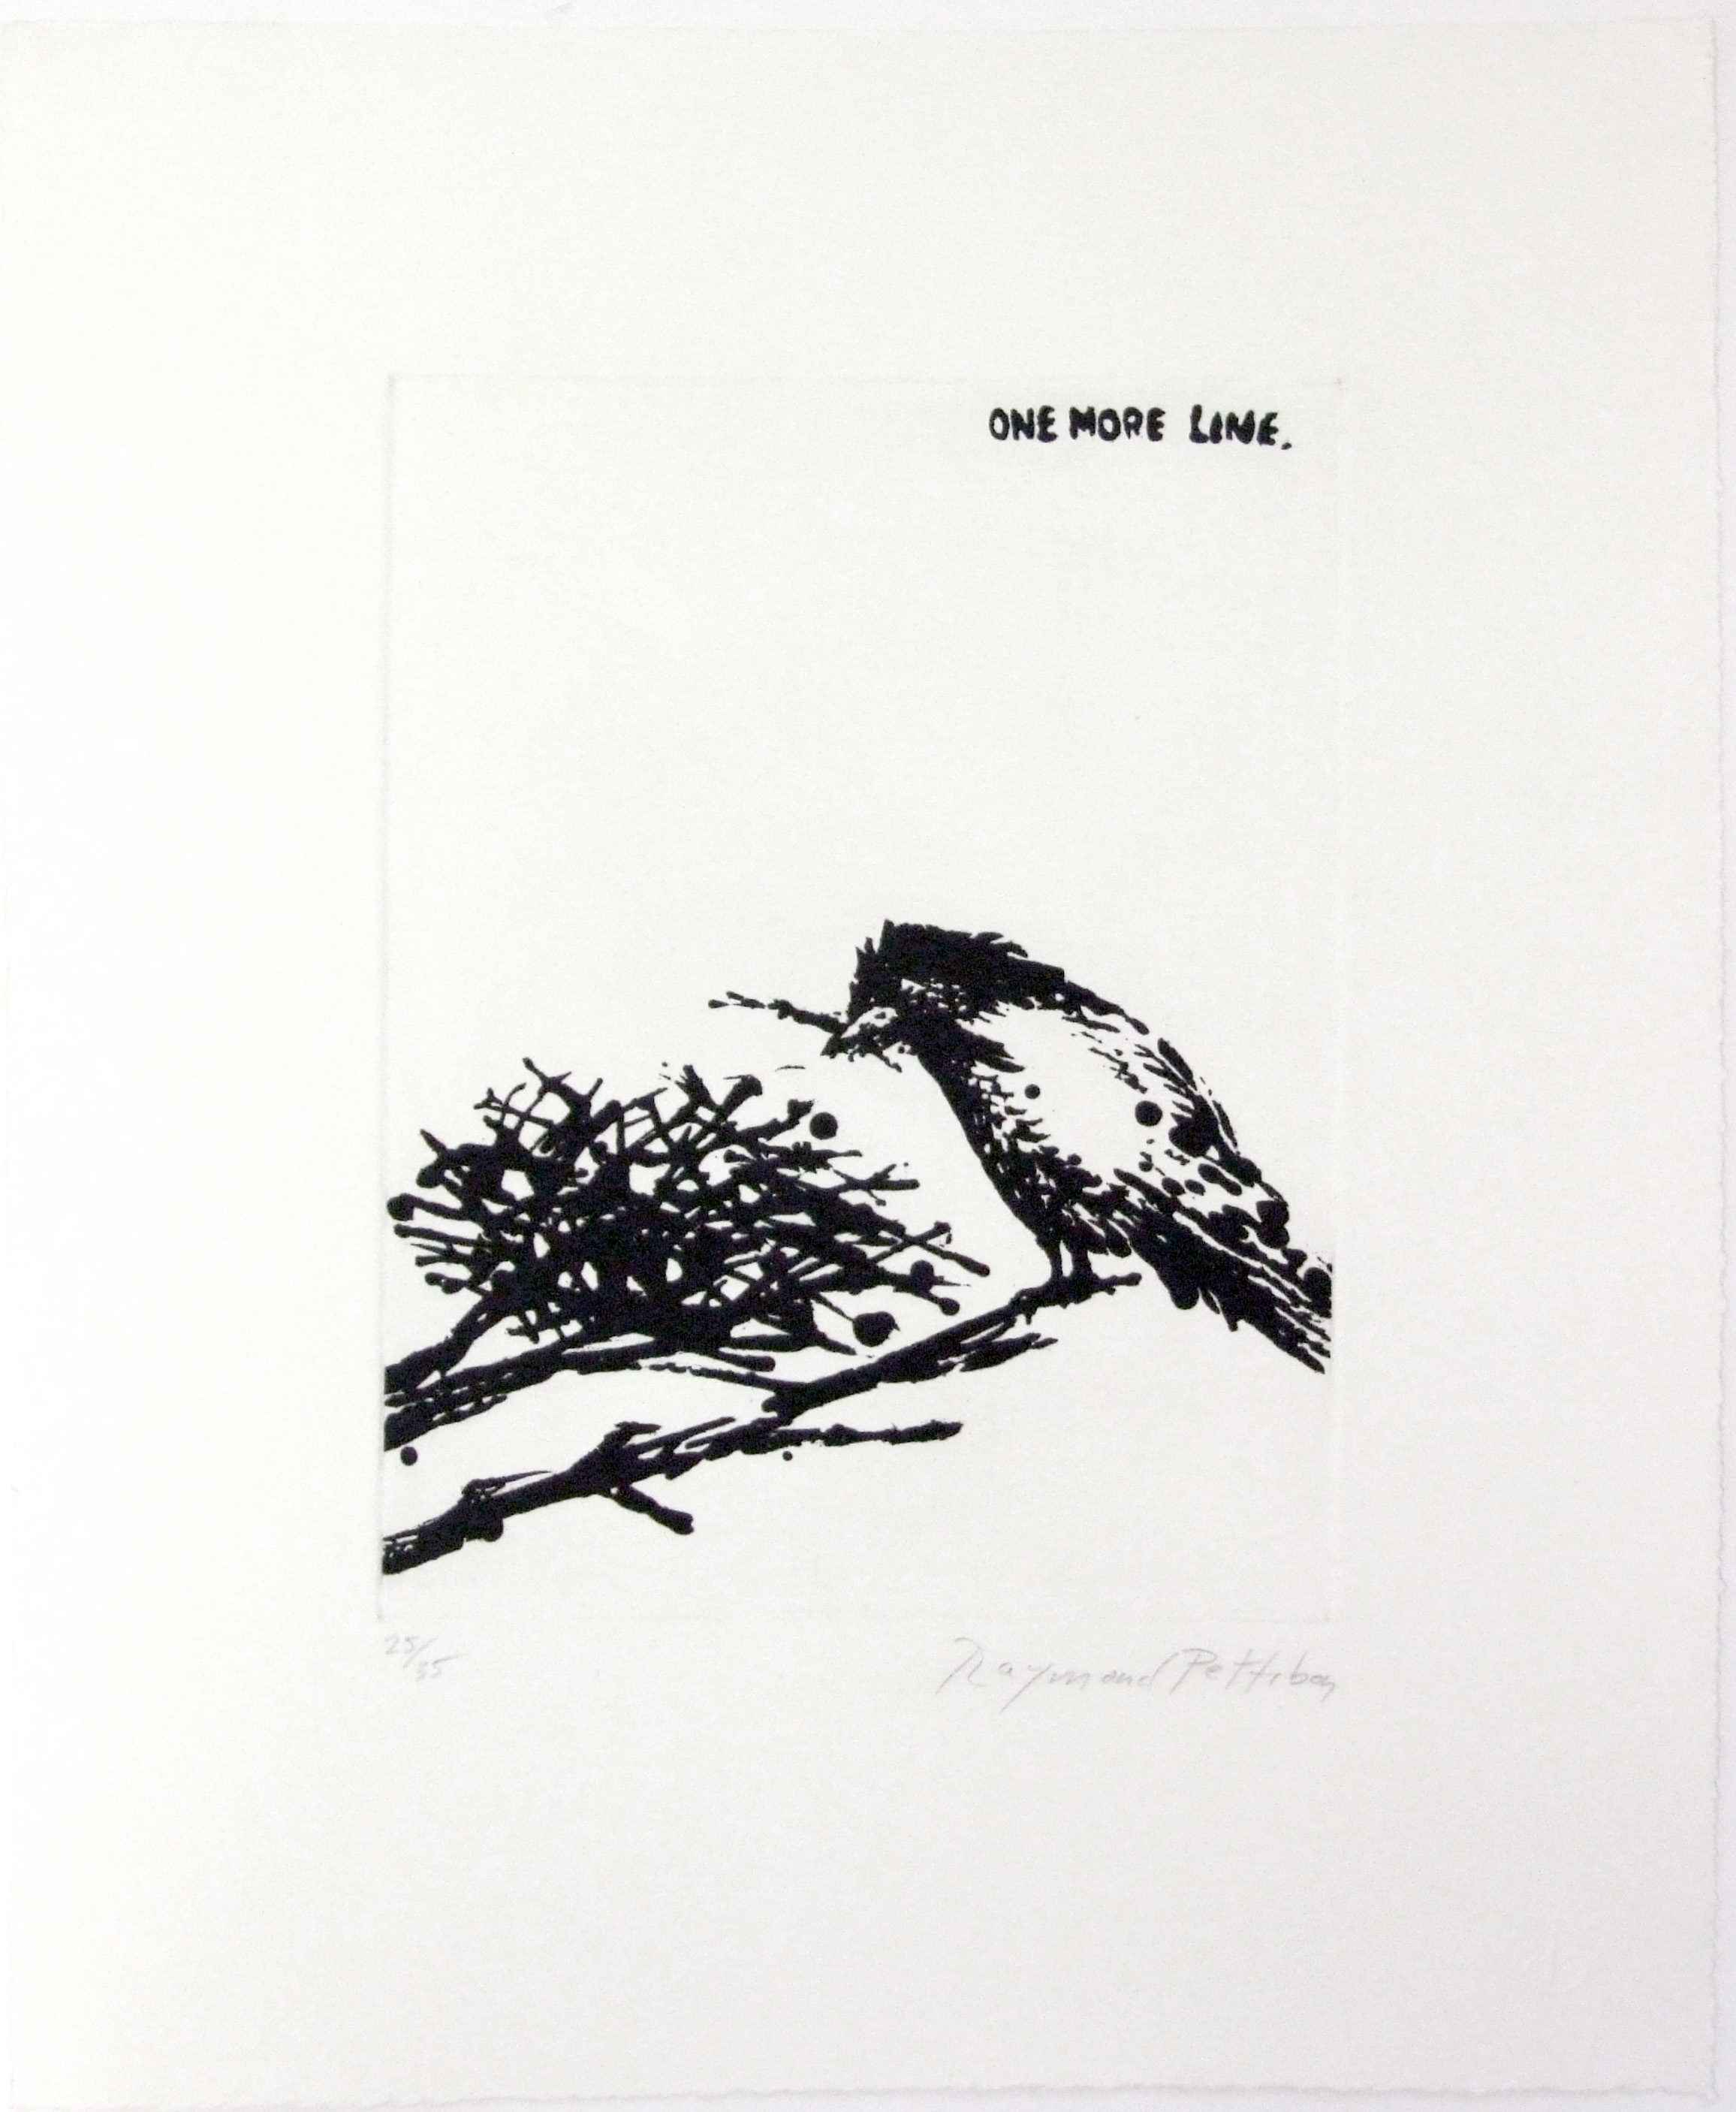 Prints by Raymond Pettibon